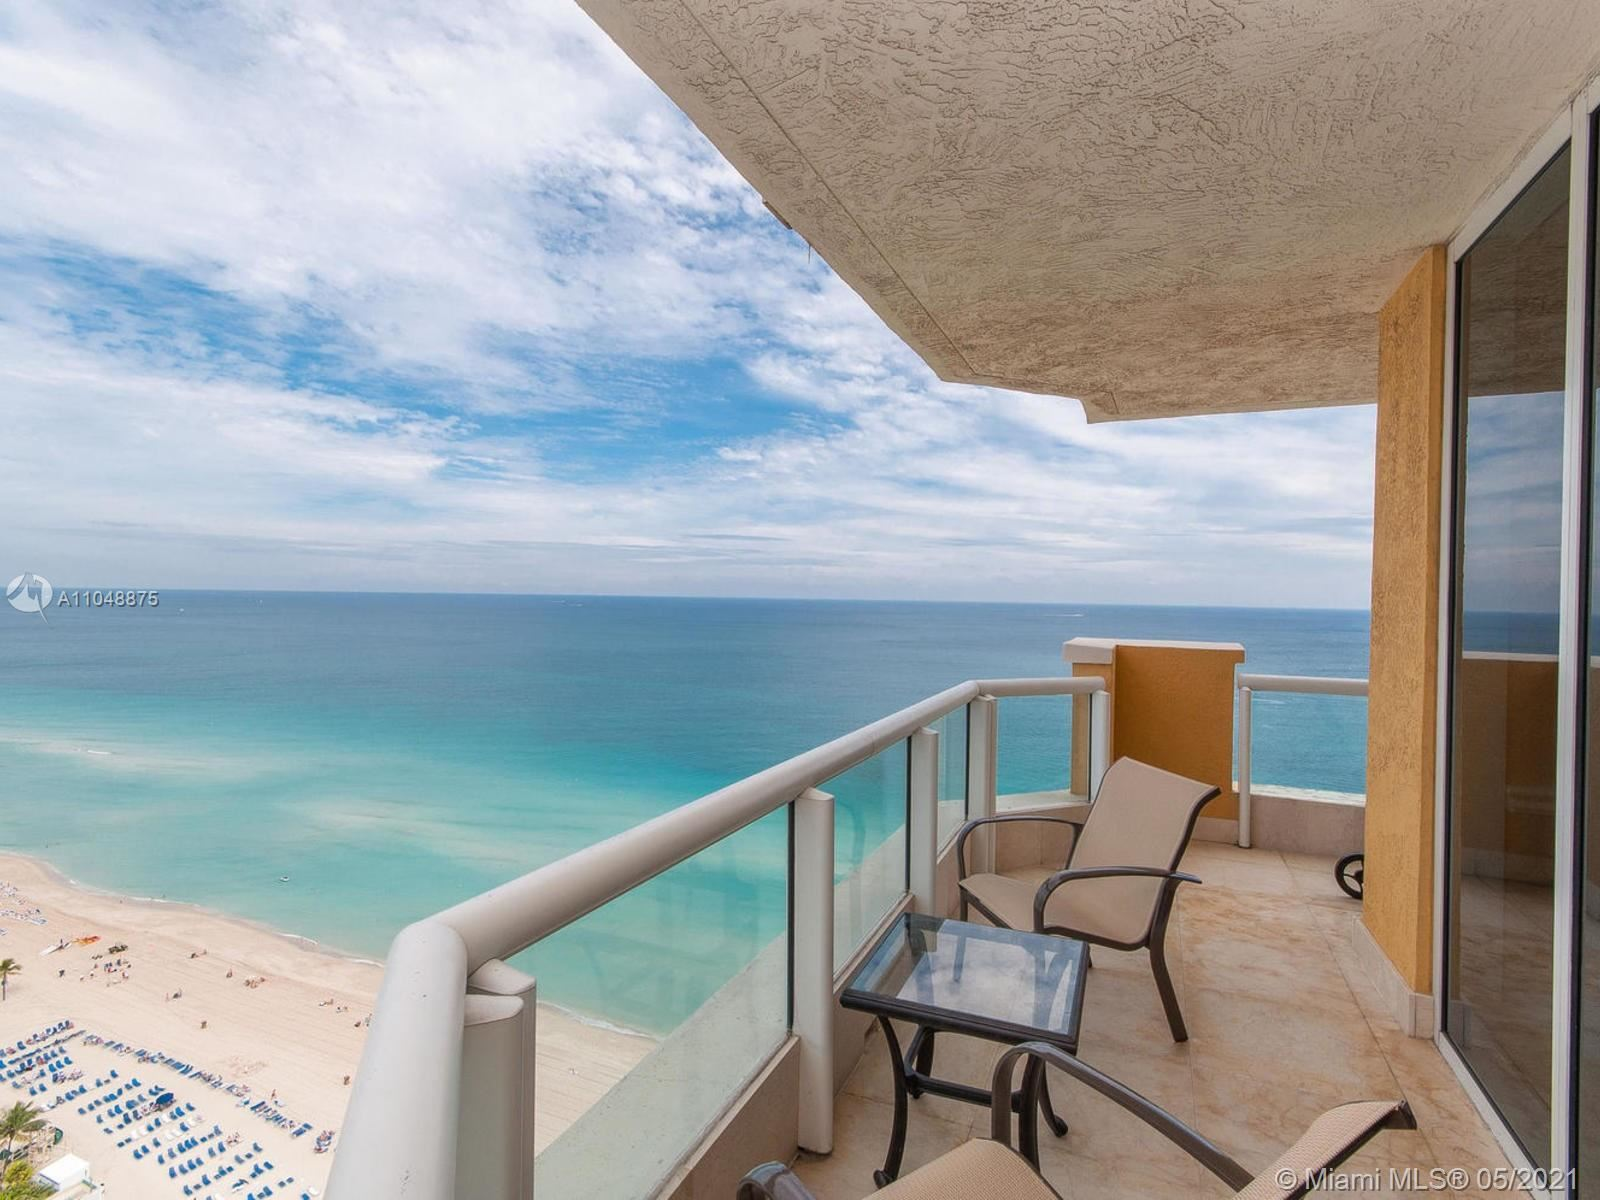 17875 Collins Ave #2701, Sunny Isles, FL 33160 - #: A11048875